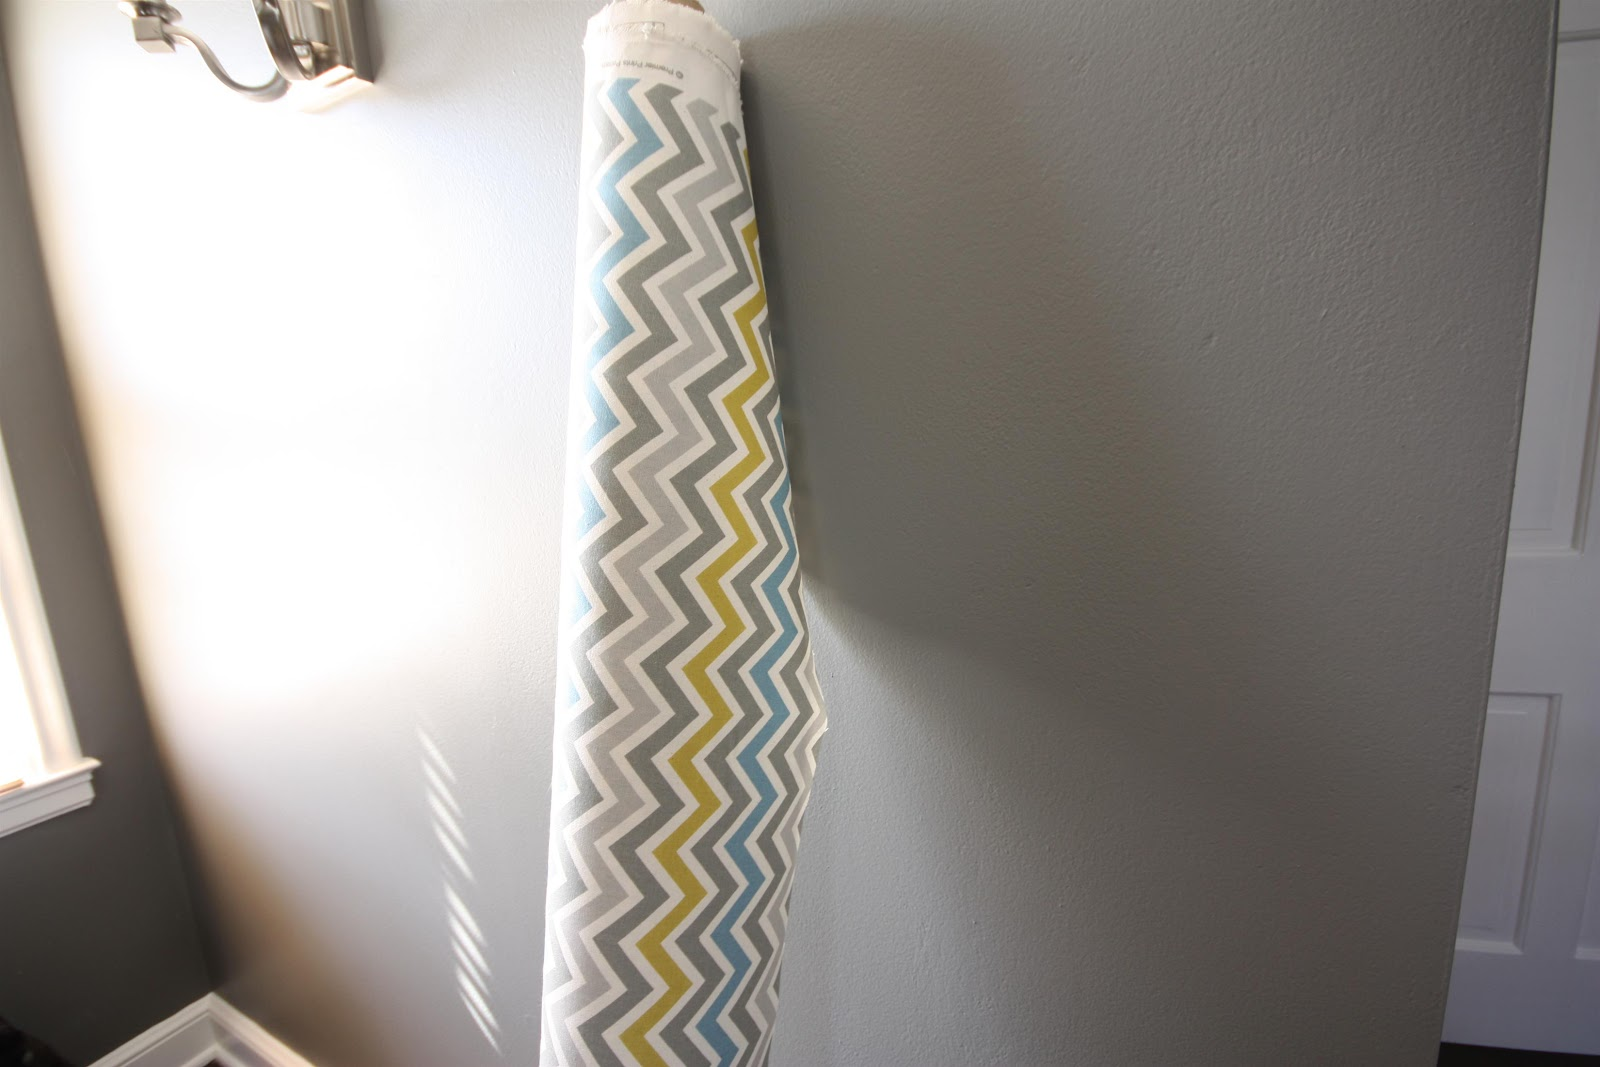 I Was Sure That Wanted Blackout Liner For The Curtains So Went To Joann And Got This Roc Lon Budget During A Half Off